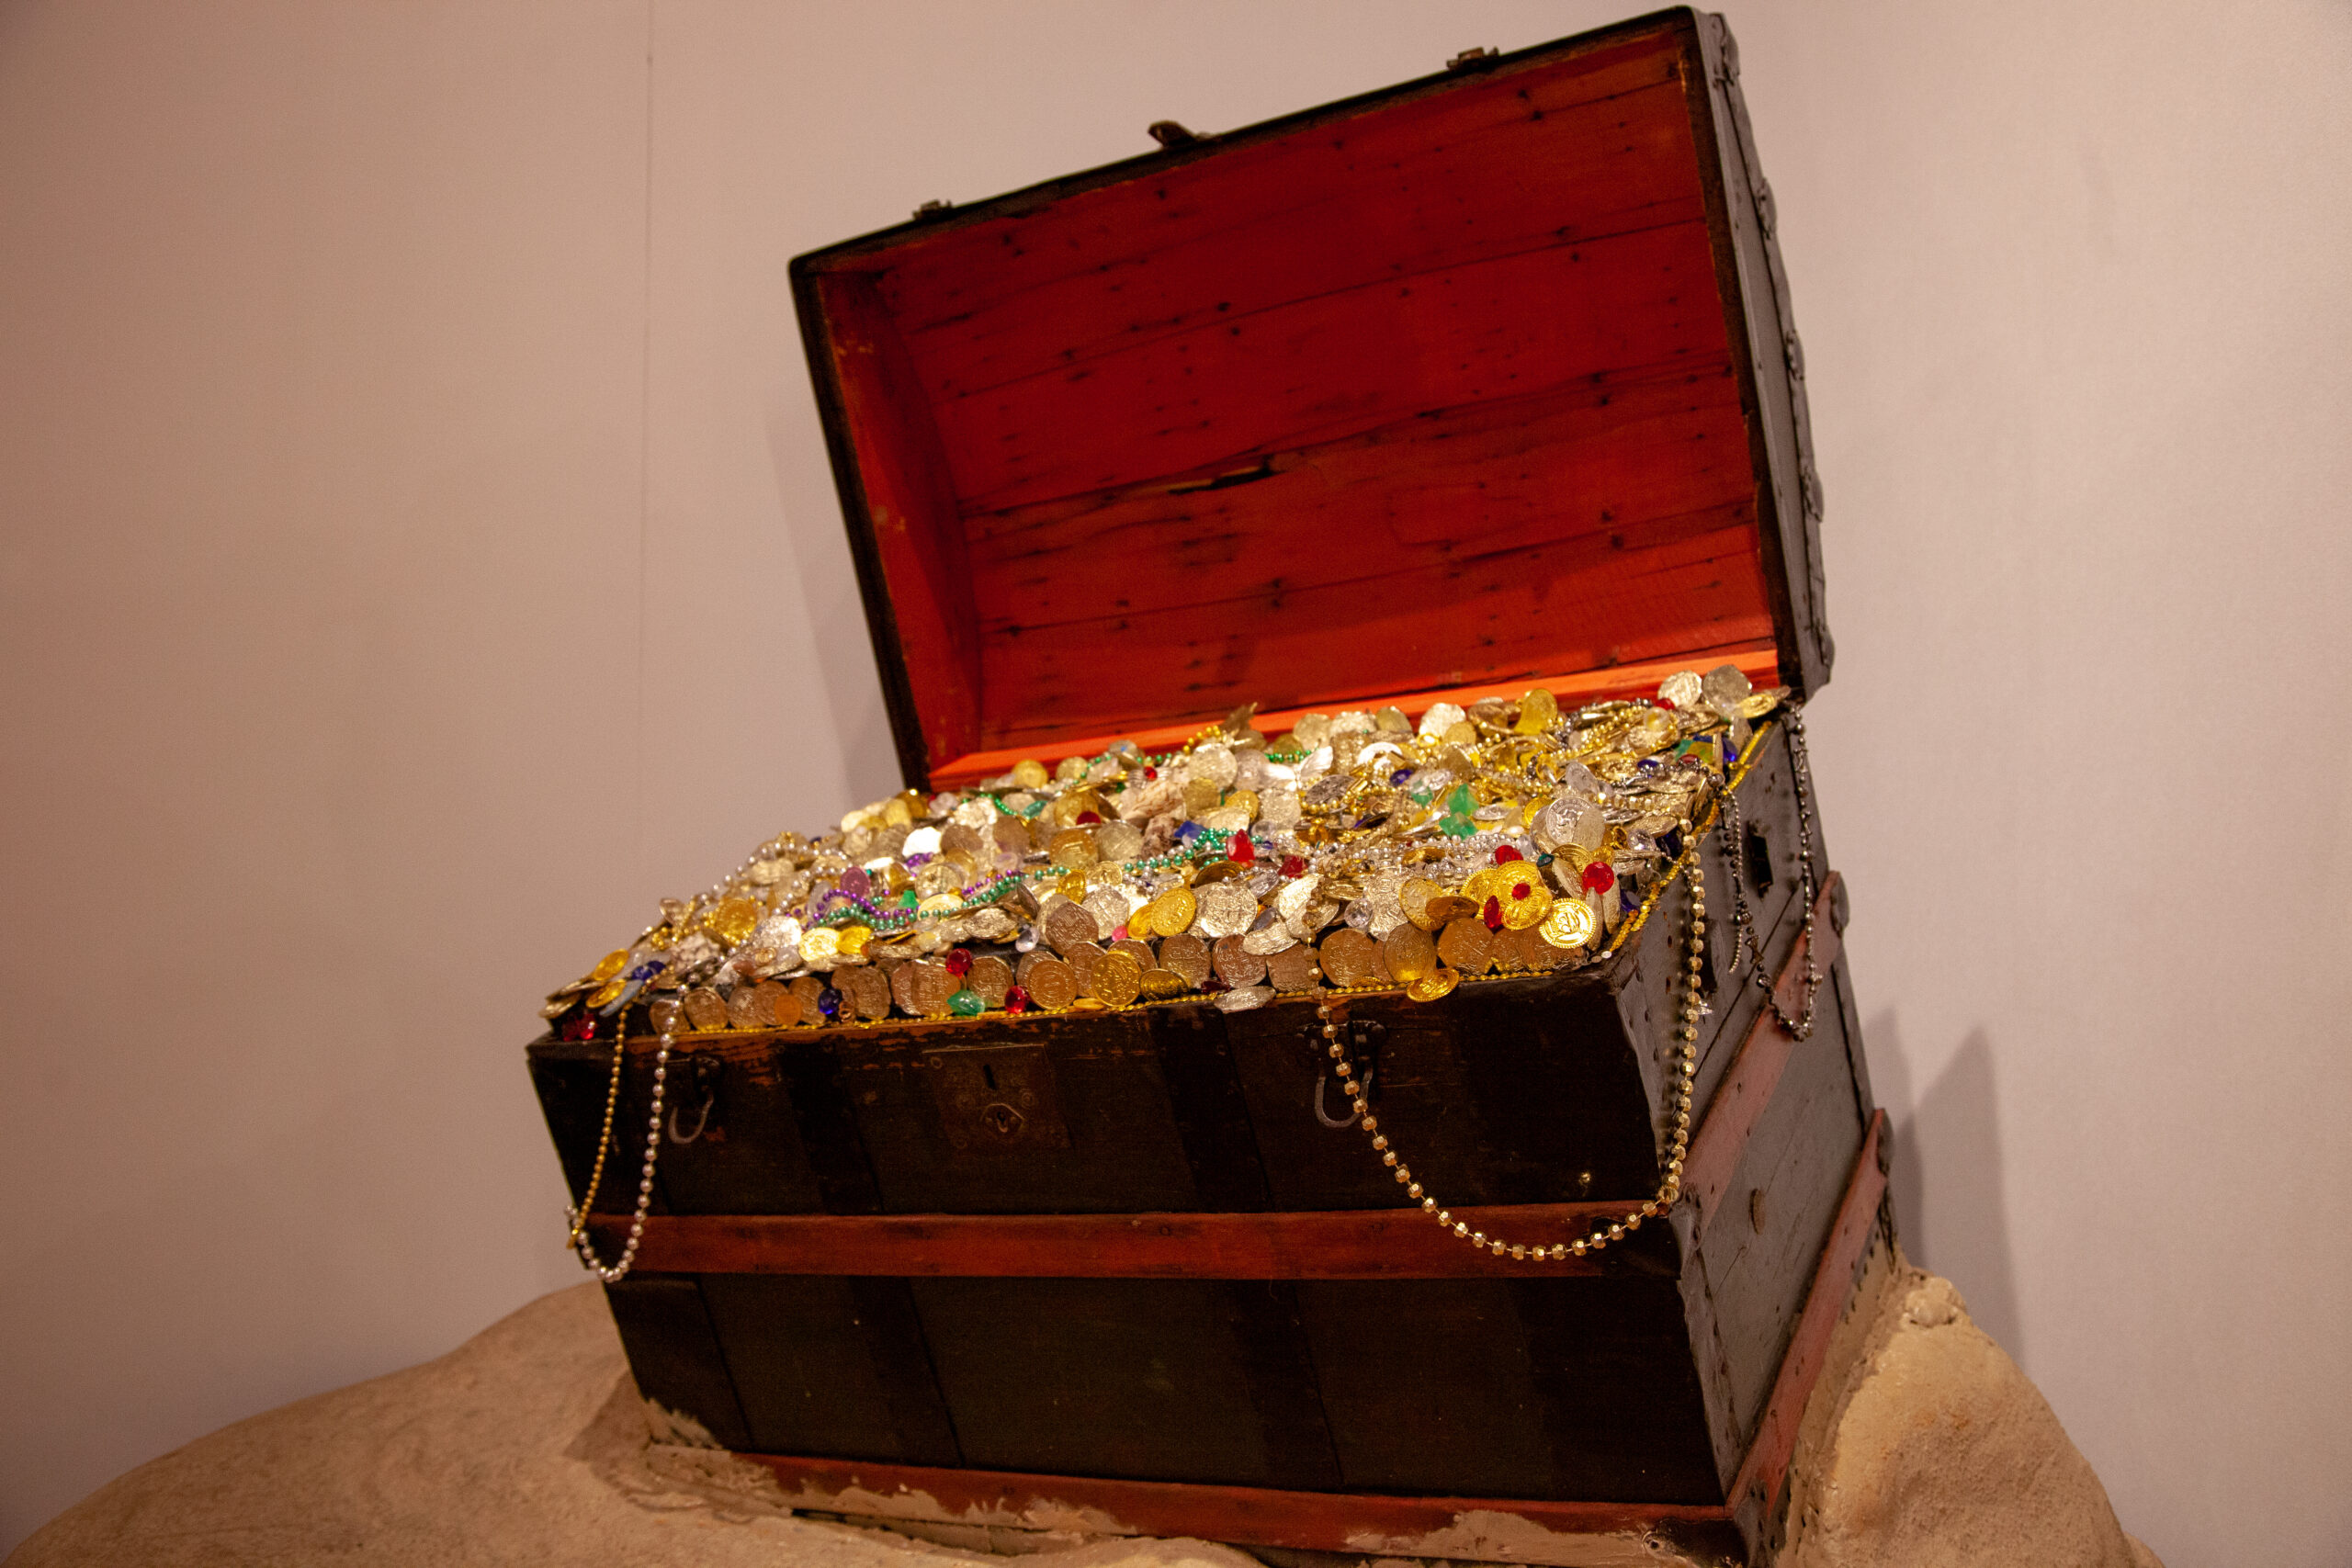 Treasure chest exhibit full of gold and other precious items in the Treasure! exhibition.